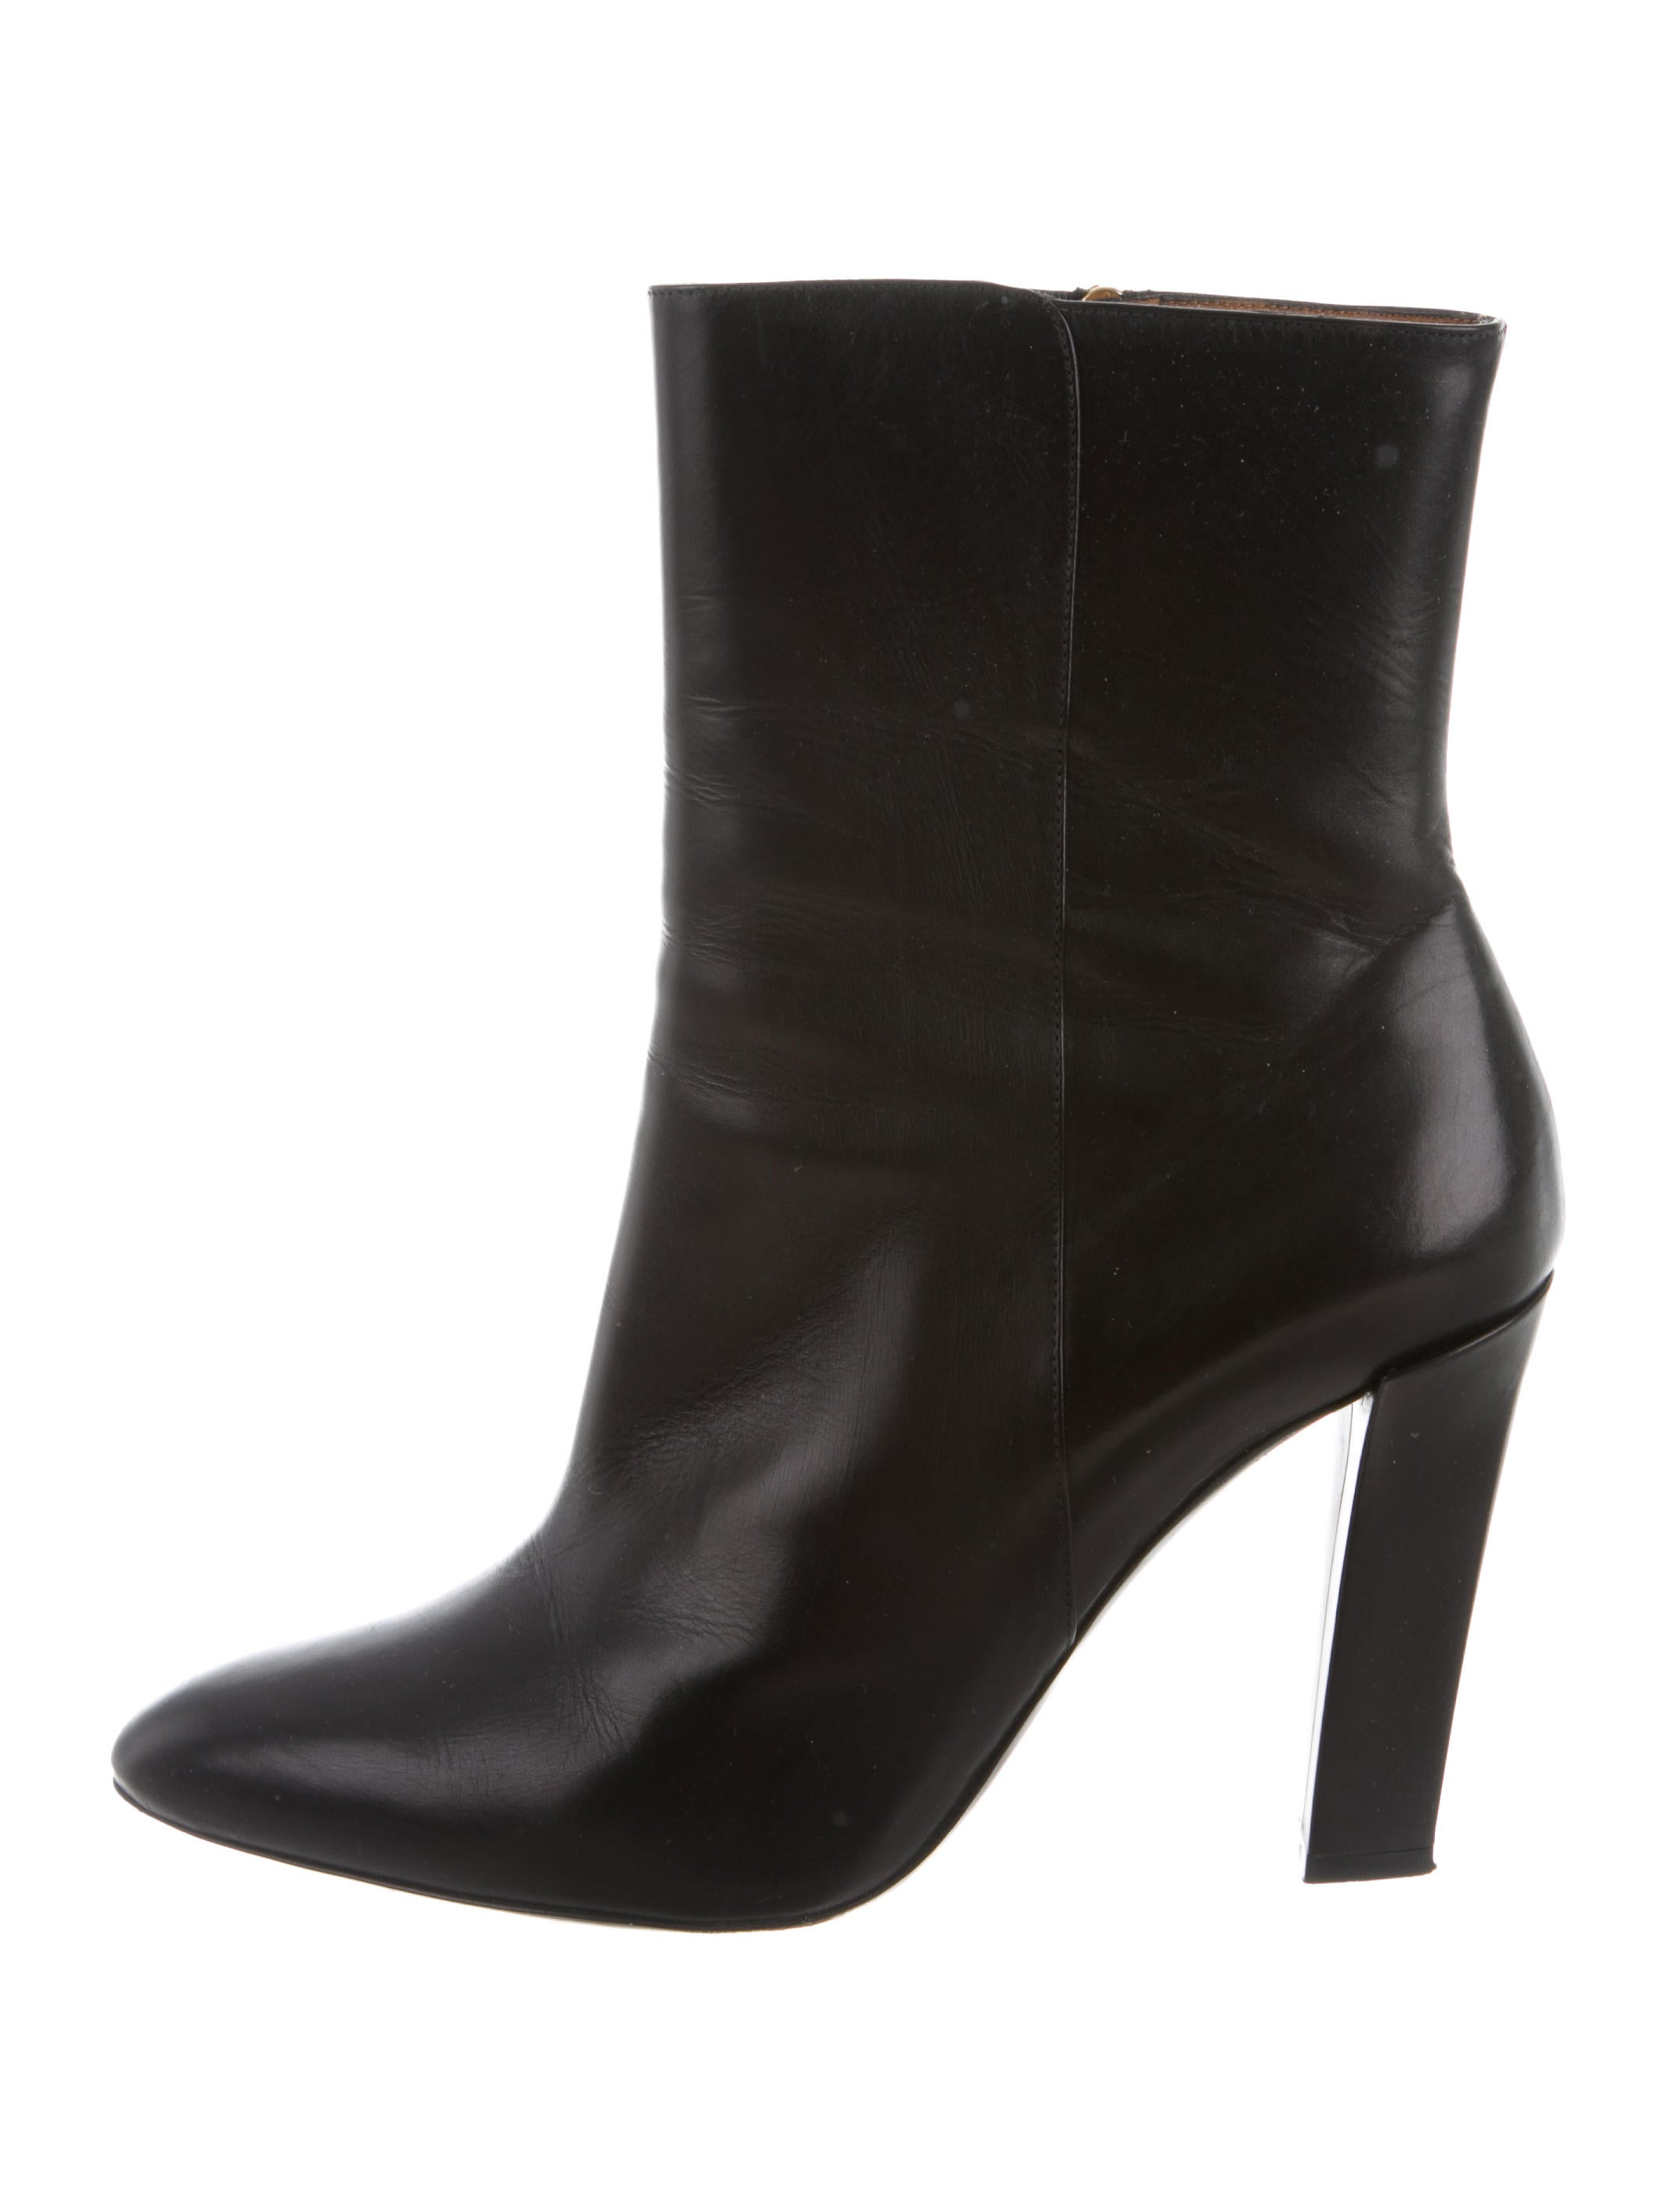 Ralph Lauren Collection Leather Pointed-Toe Boots